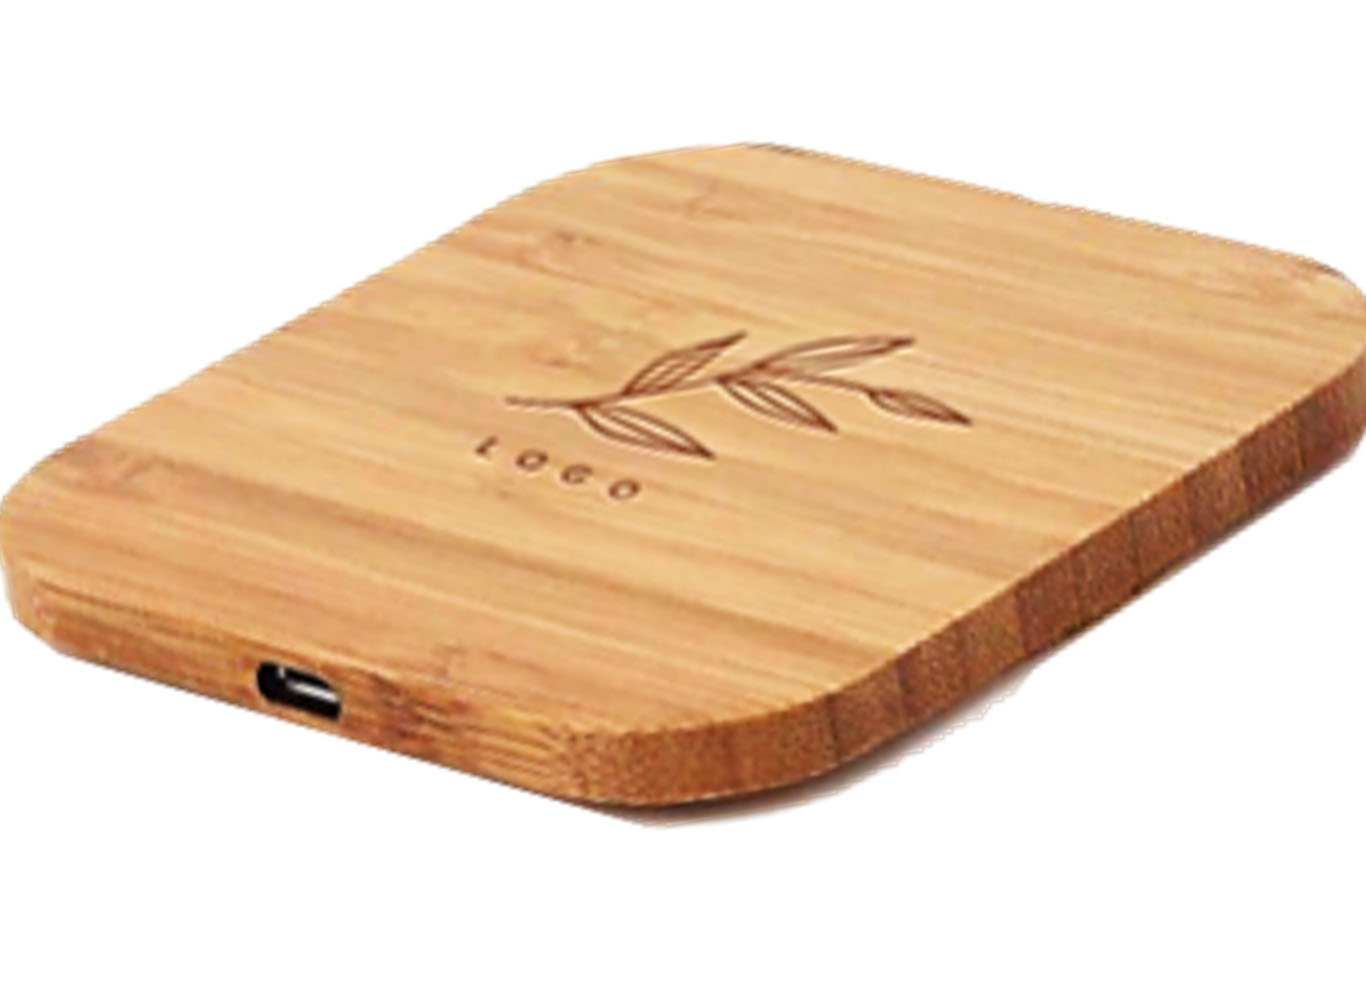 Bamboo Wireless Phone Charger